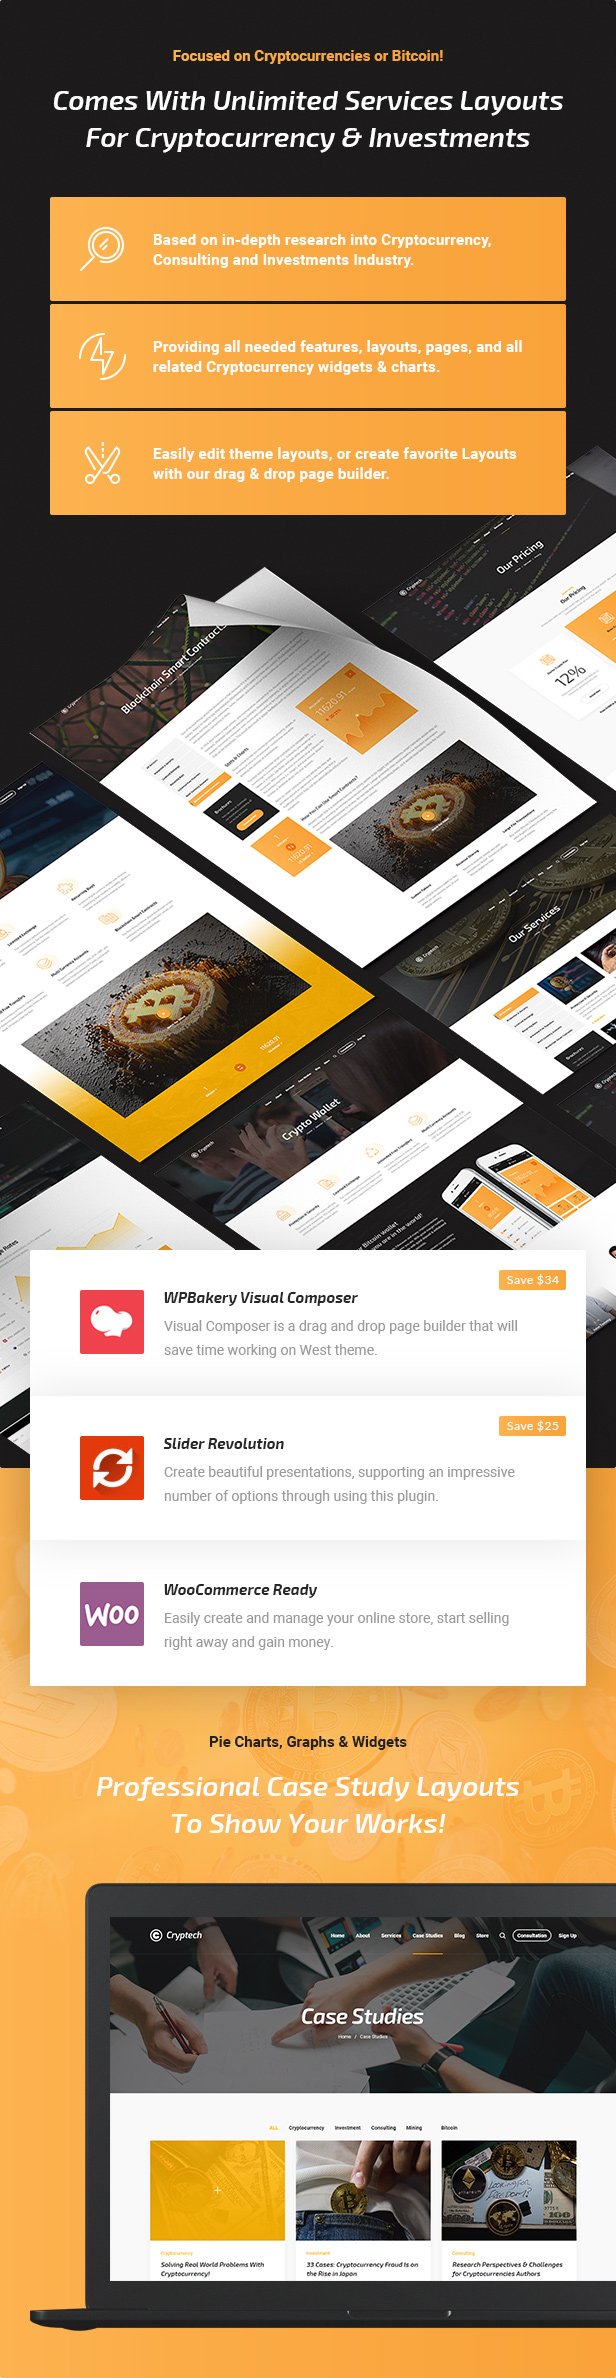 Cryptech - Investments, Consulting, ICO and Cryptocurrency WordPress Theme - 5